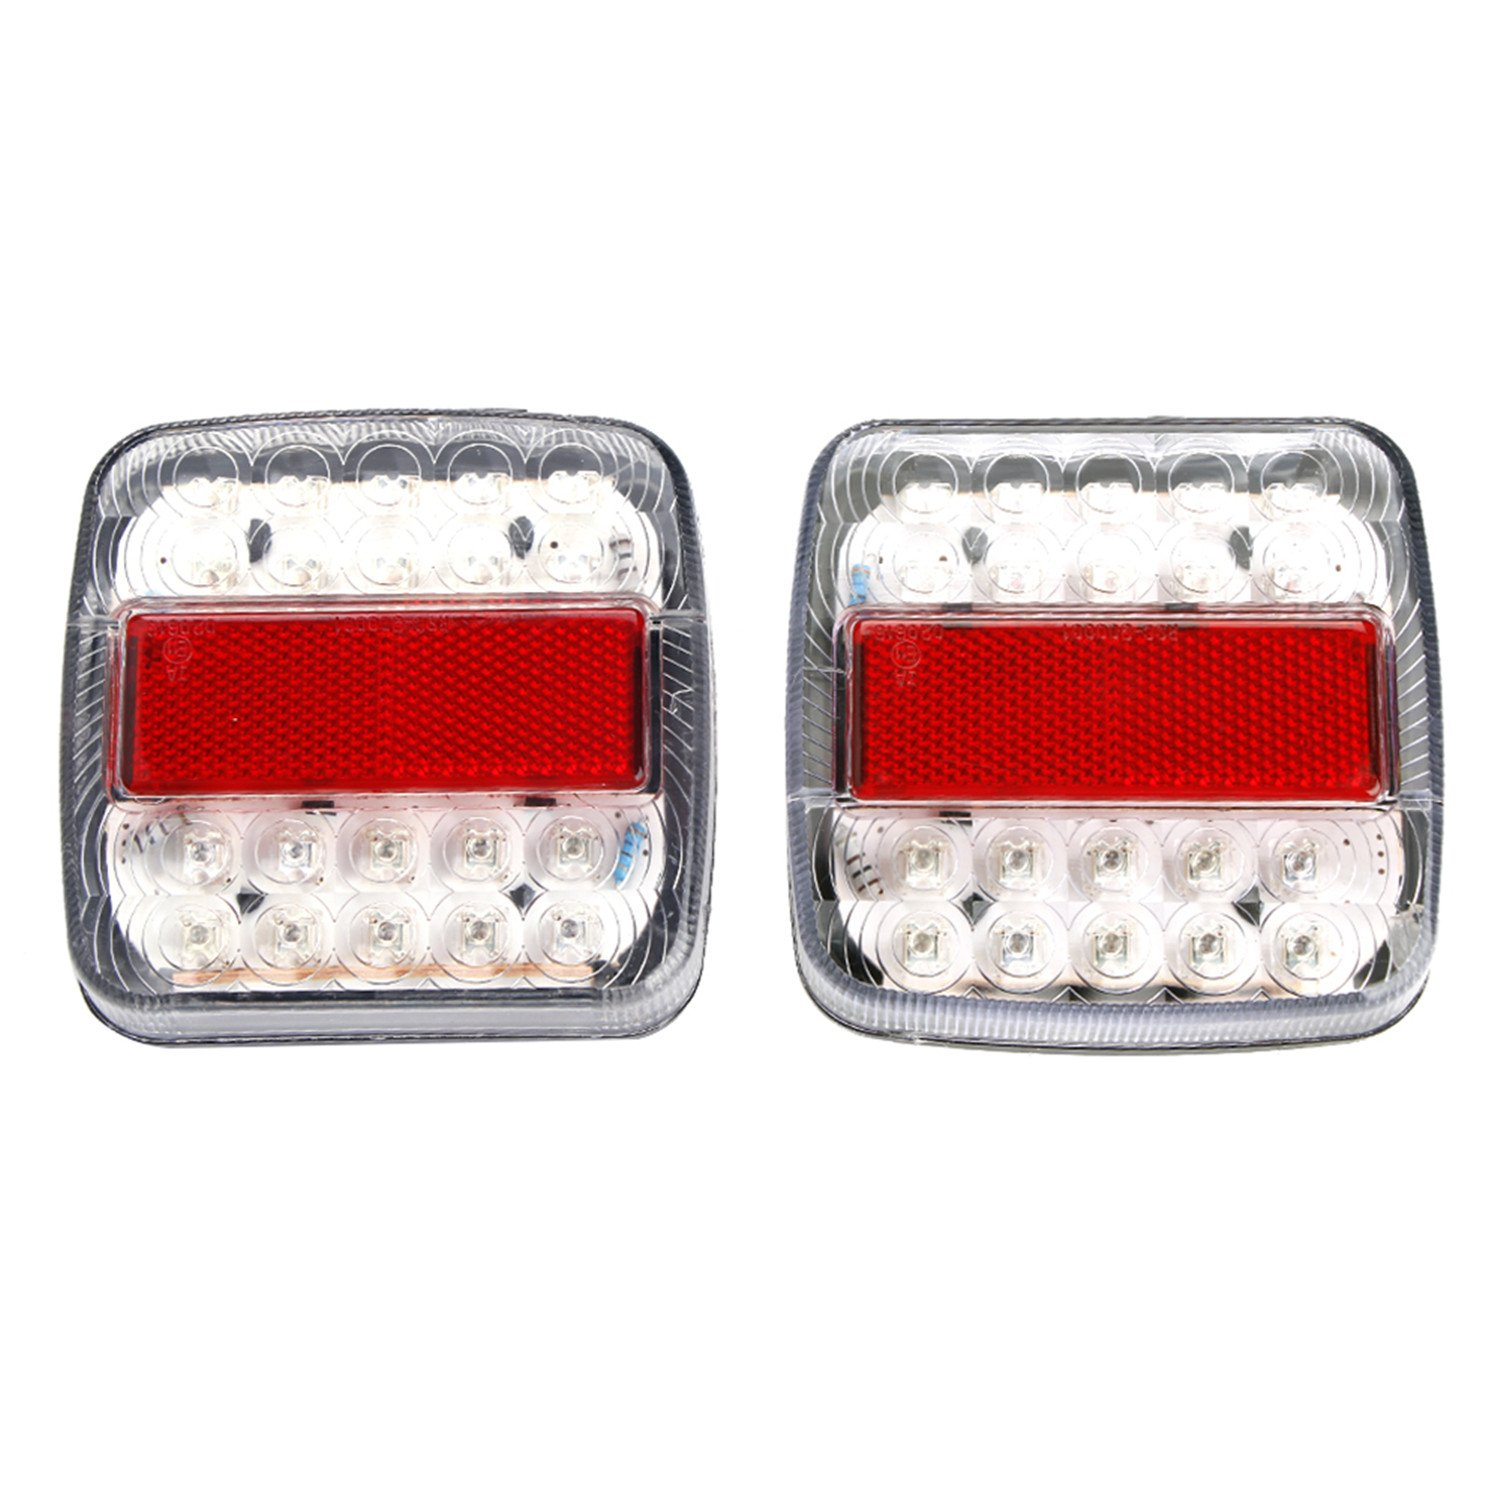 2 X 12v Trailer Tail Lights Led Rear Brake Caravan Wiring Additional Indicator Stop Lamp Universal Waterproof White For Truck Lorry Van Tractor